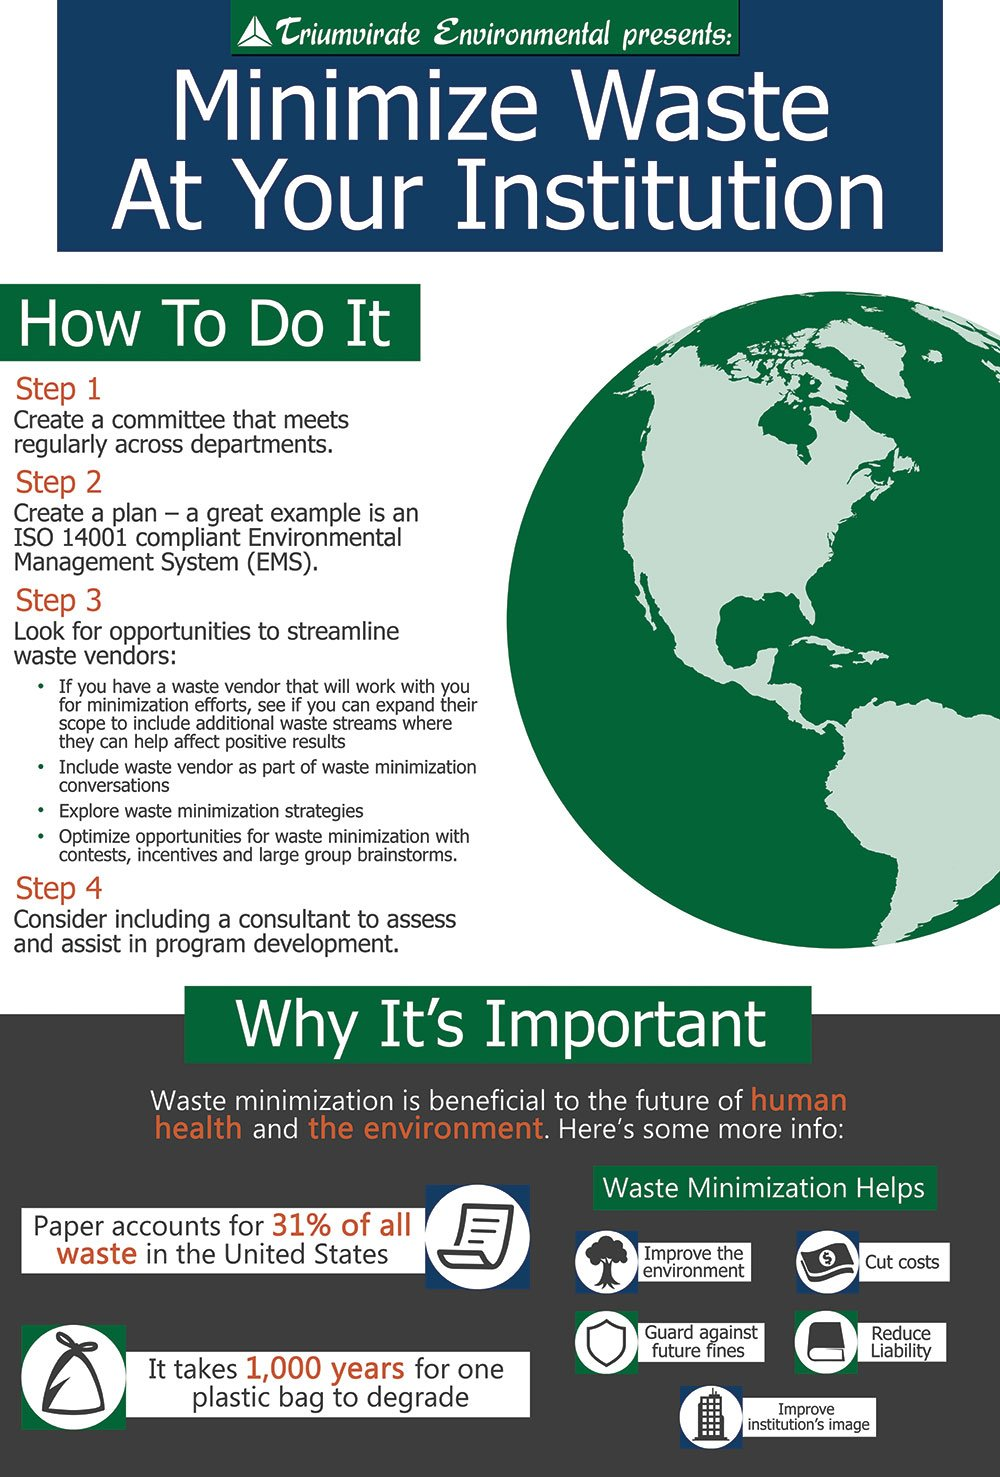 Minimize waste at your organization infographic